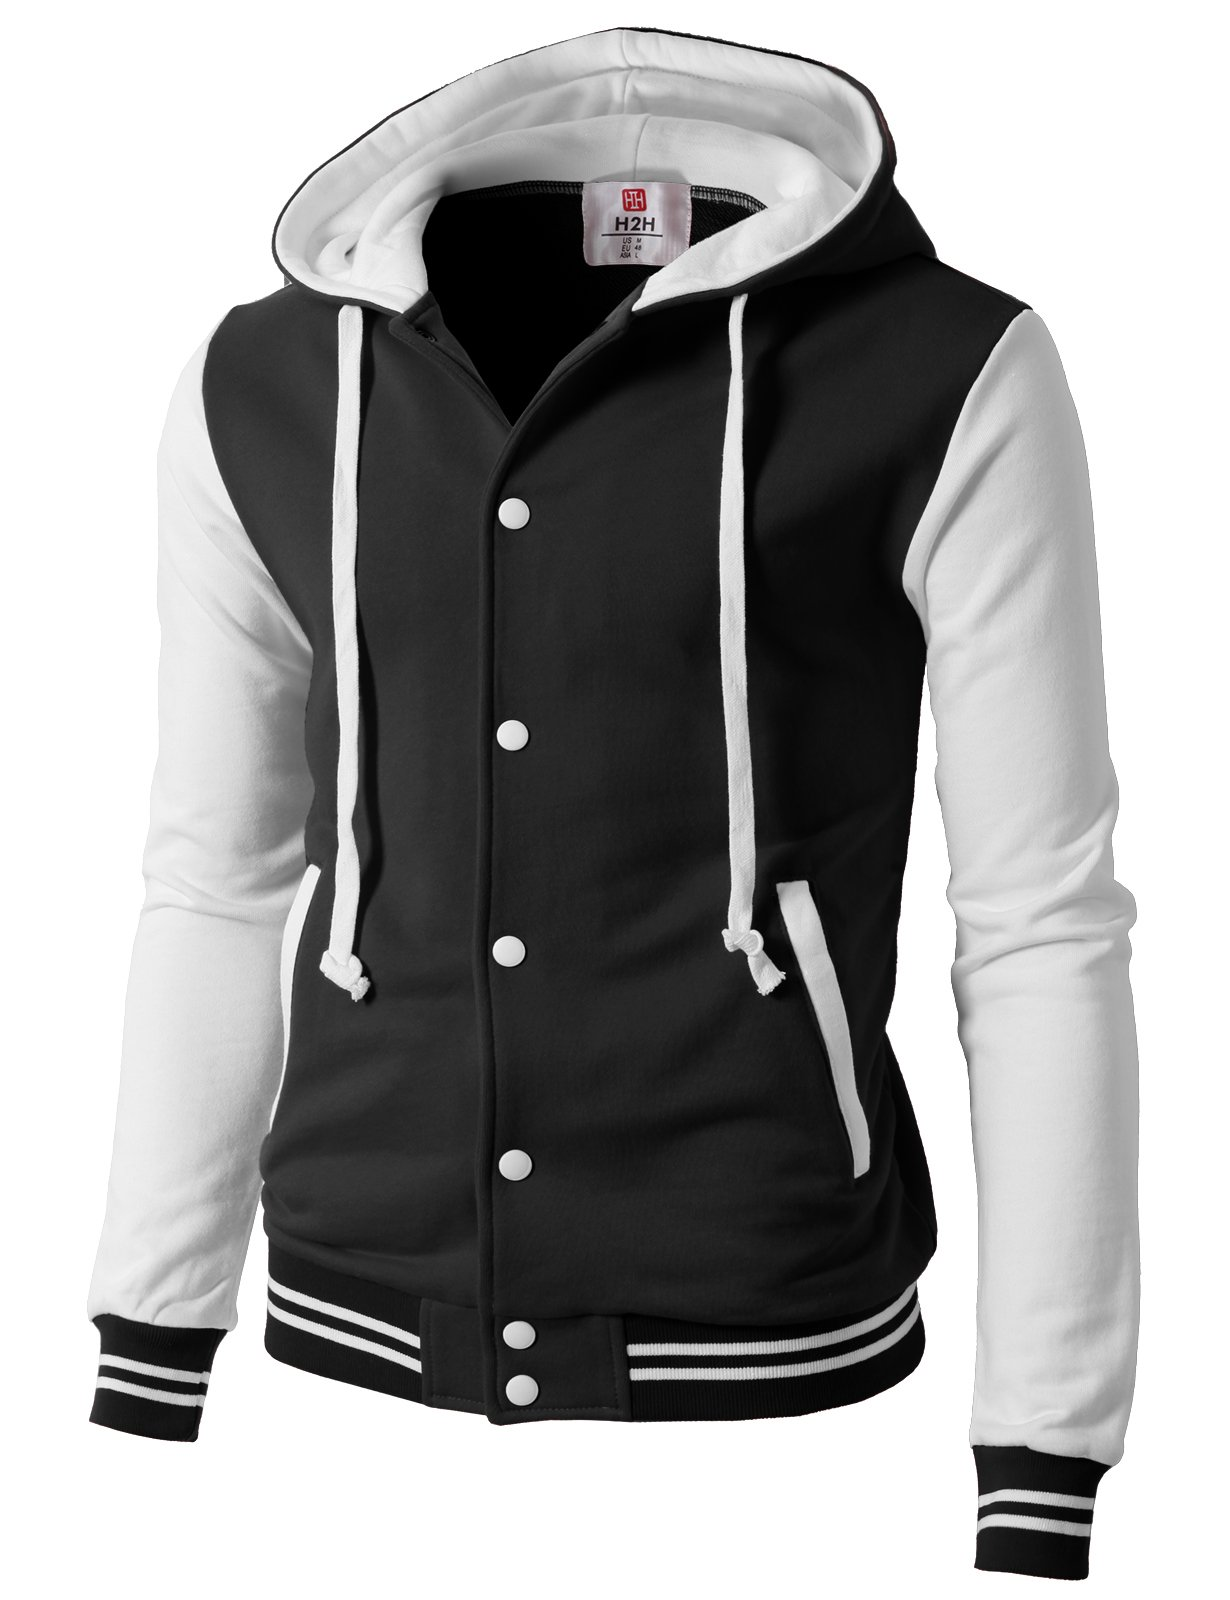 H2H Mens Casual Fashion Active Slim Fit Hoodie Zip-up Bomber Jacket Blackwhite US S/Asia M (CMOJA099)